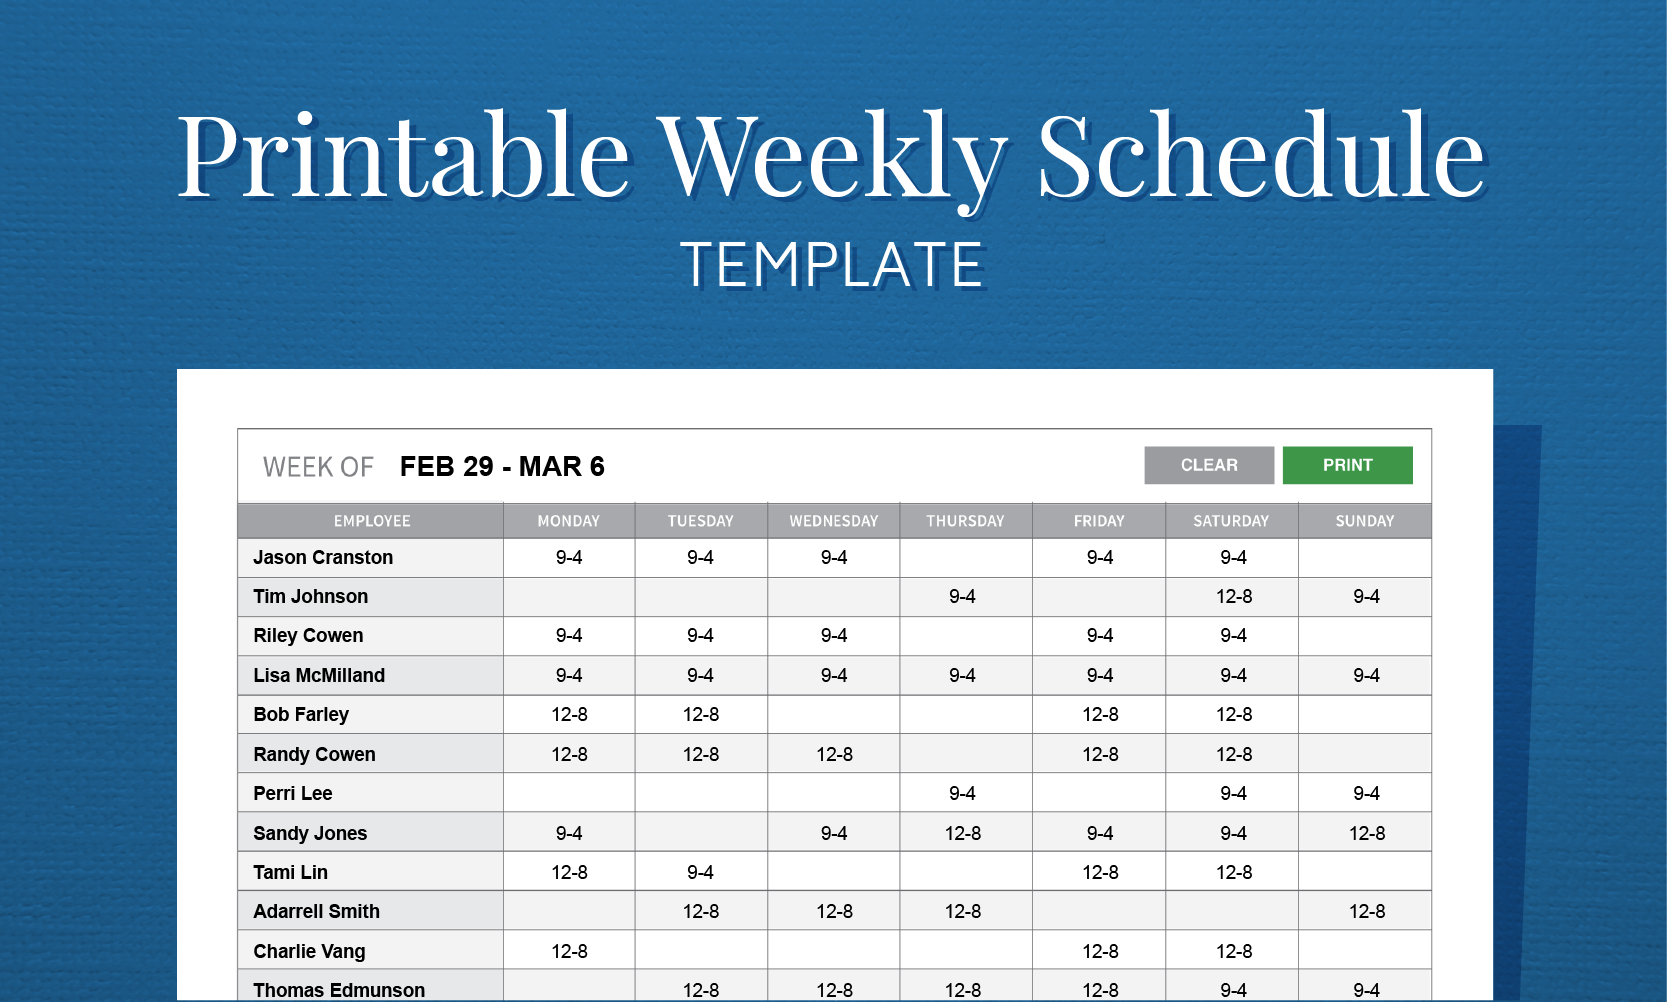 Free Printable Work Schedule Template For Employee Scheduling